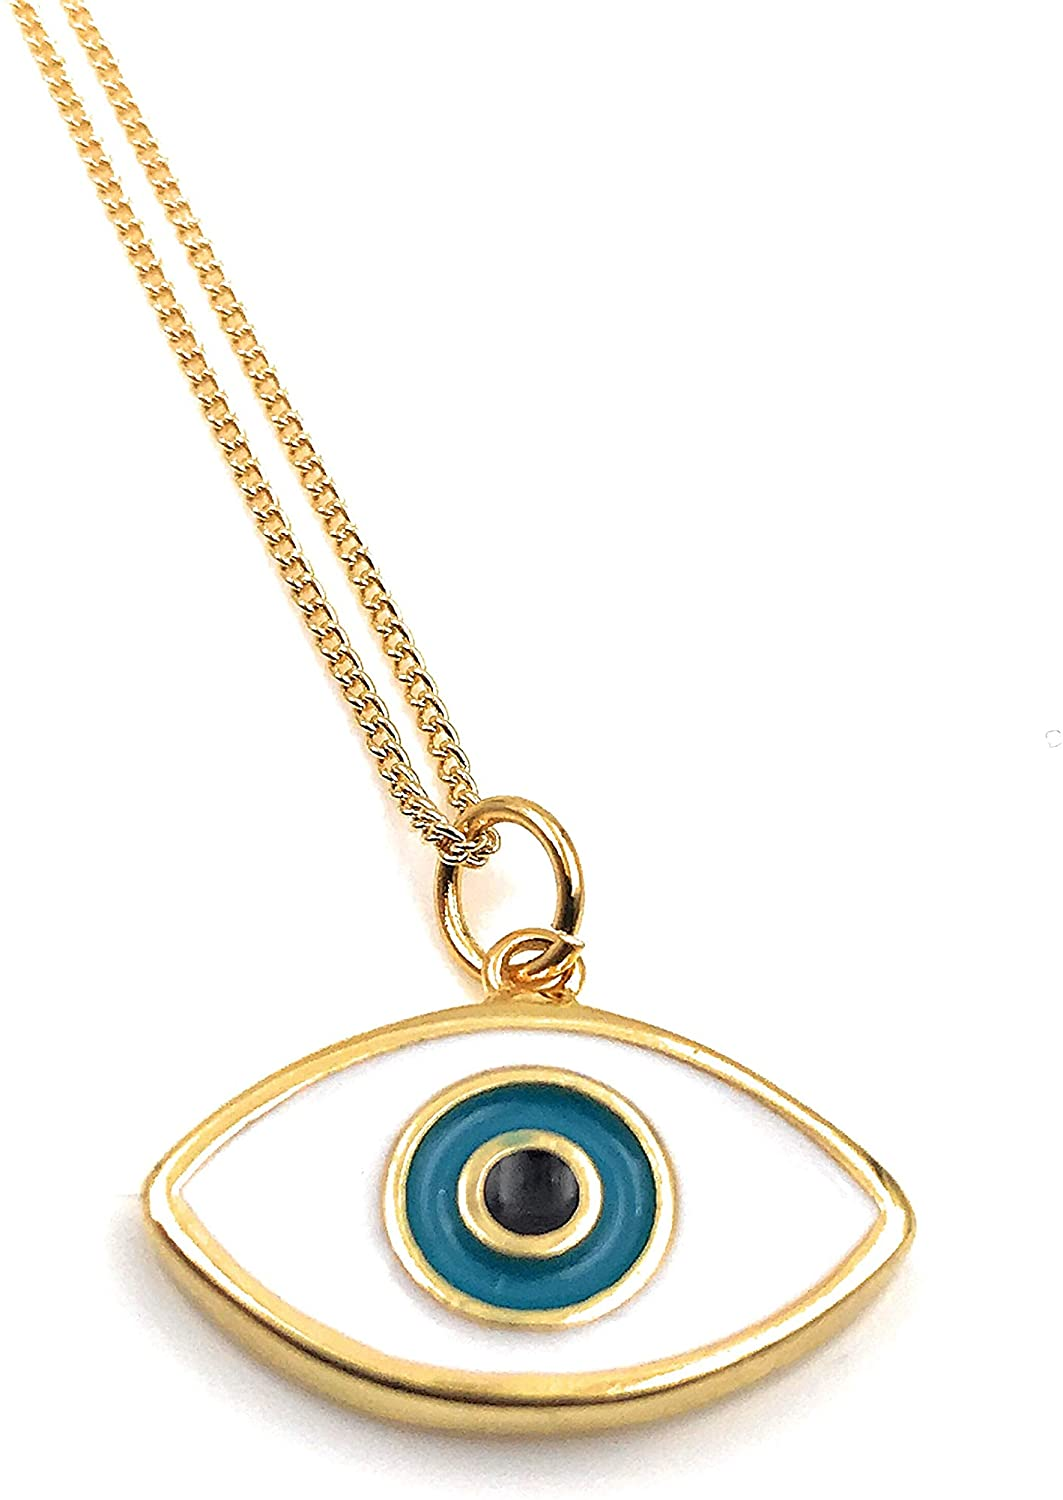 LESLIE BOULES Enamel Evil Eye Pendant Necklace for Women 18K Gold Plated Chain Novelty Jewelry